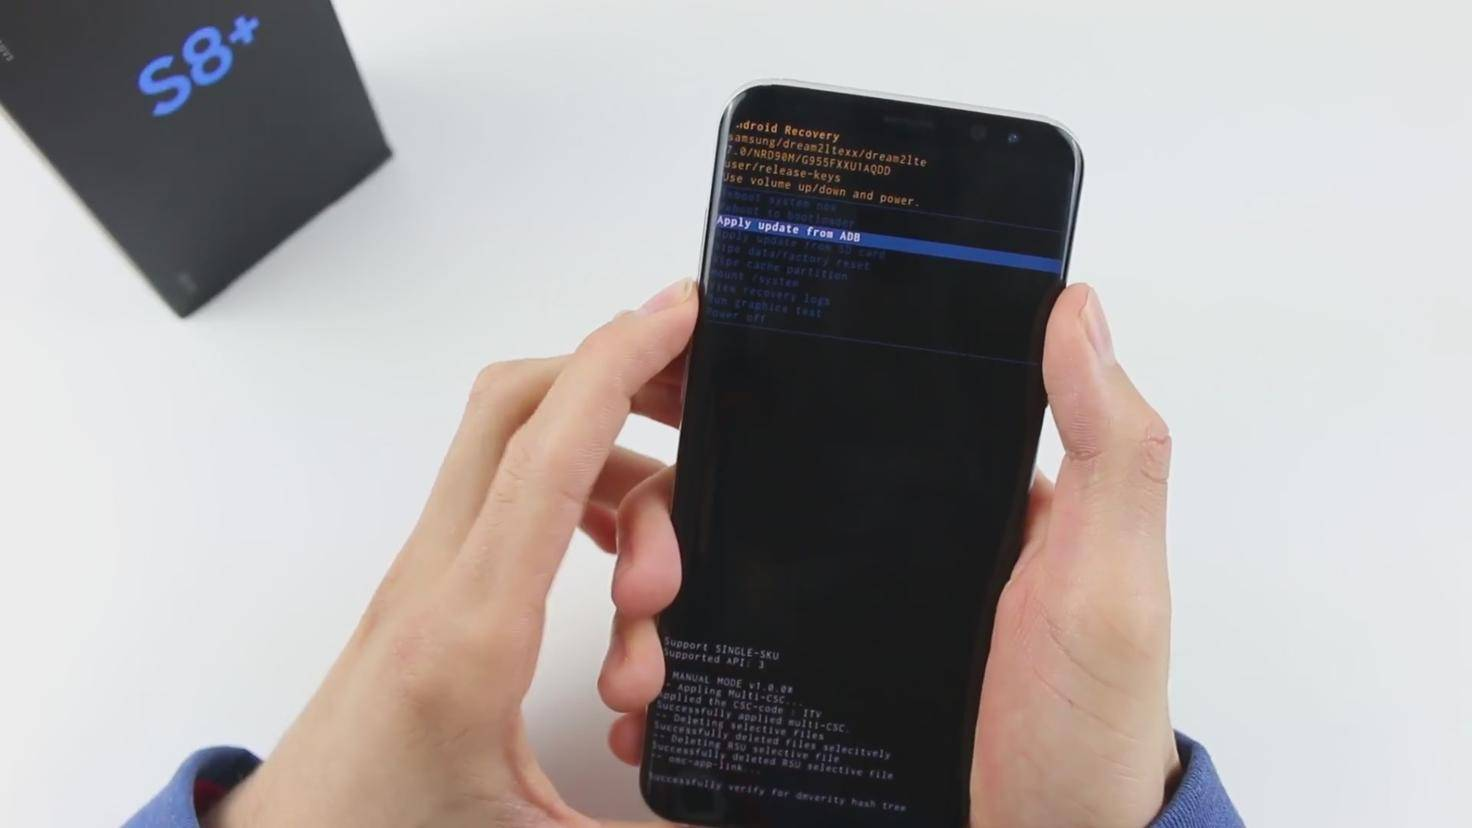 Android-Recovery-Mode-Update-ADB